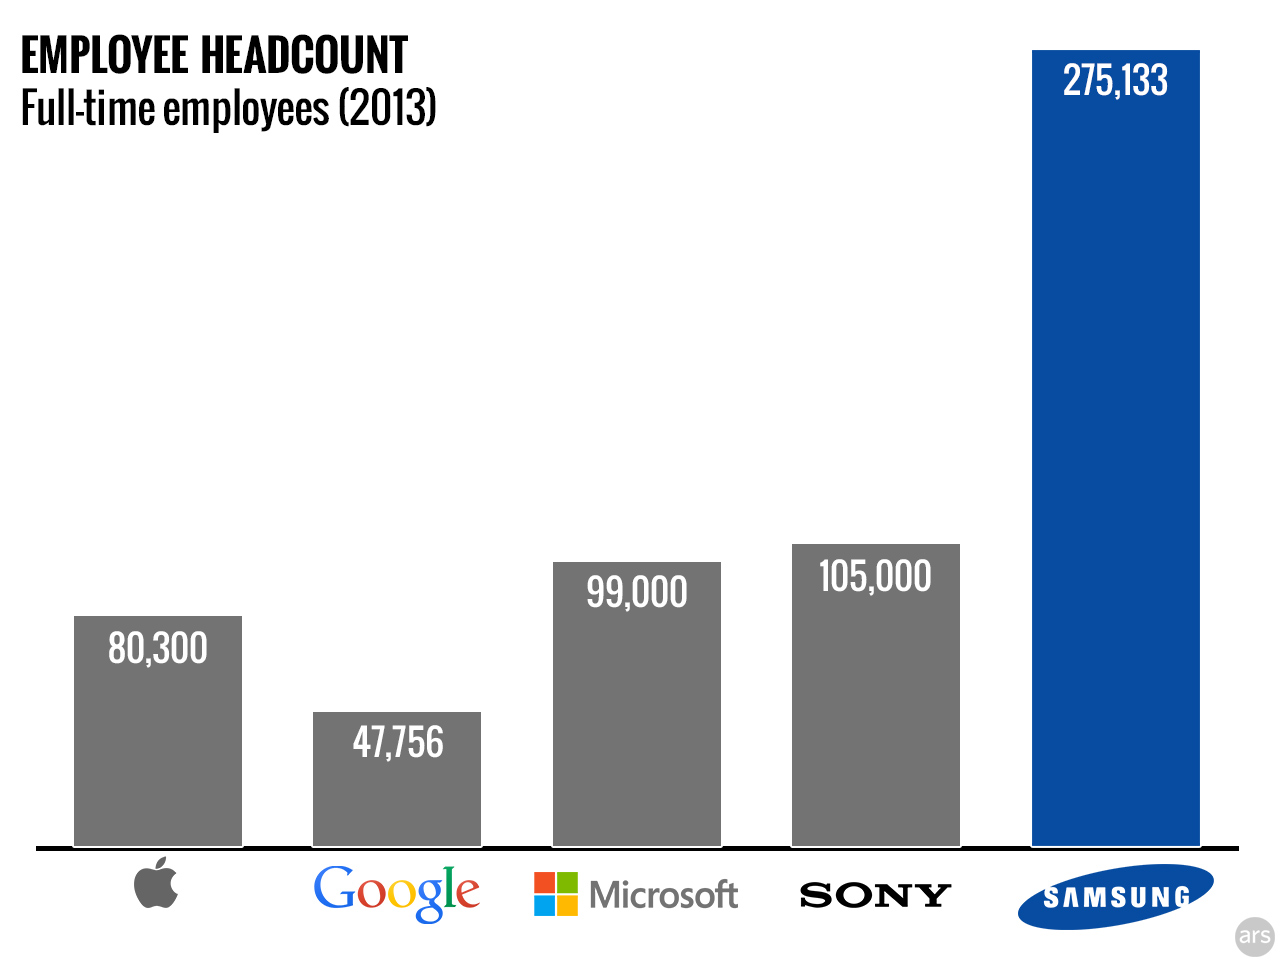 Samsung Electronics vs the headcounts of other companies.